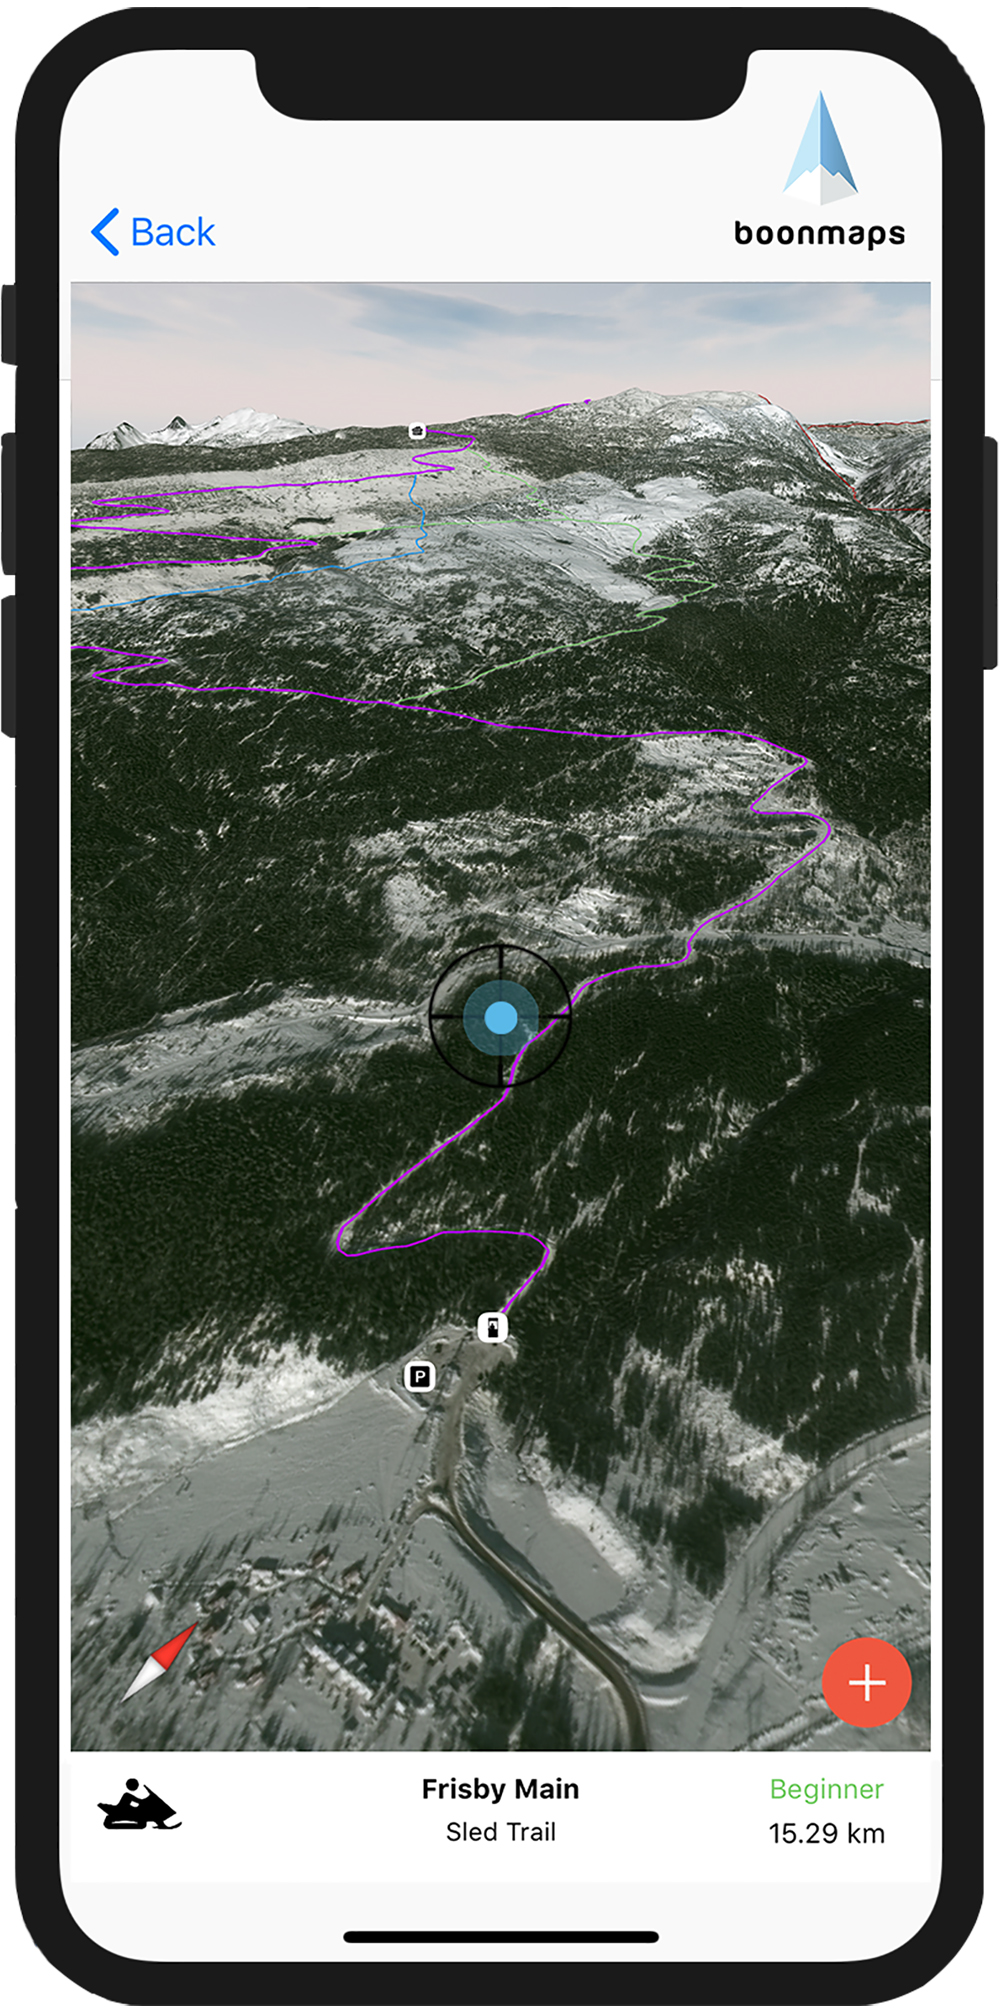 New Boonmaps app to aid backcountry navigation - Revelstoke